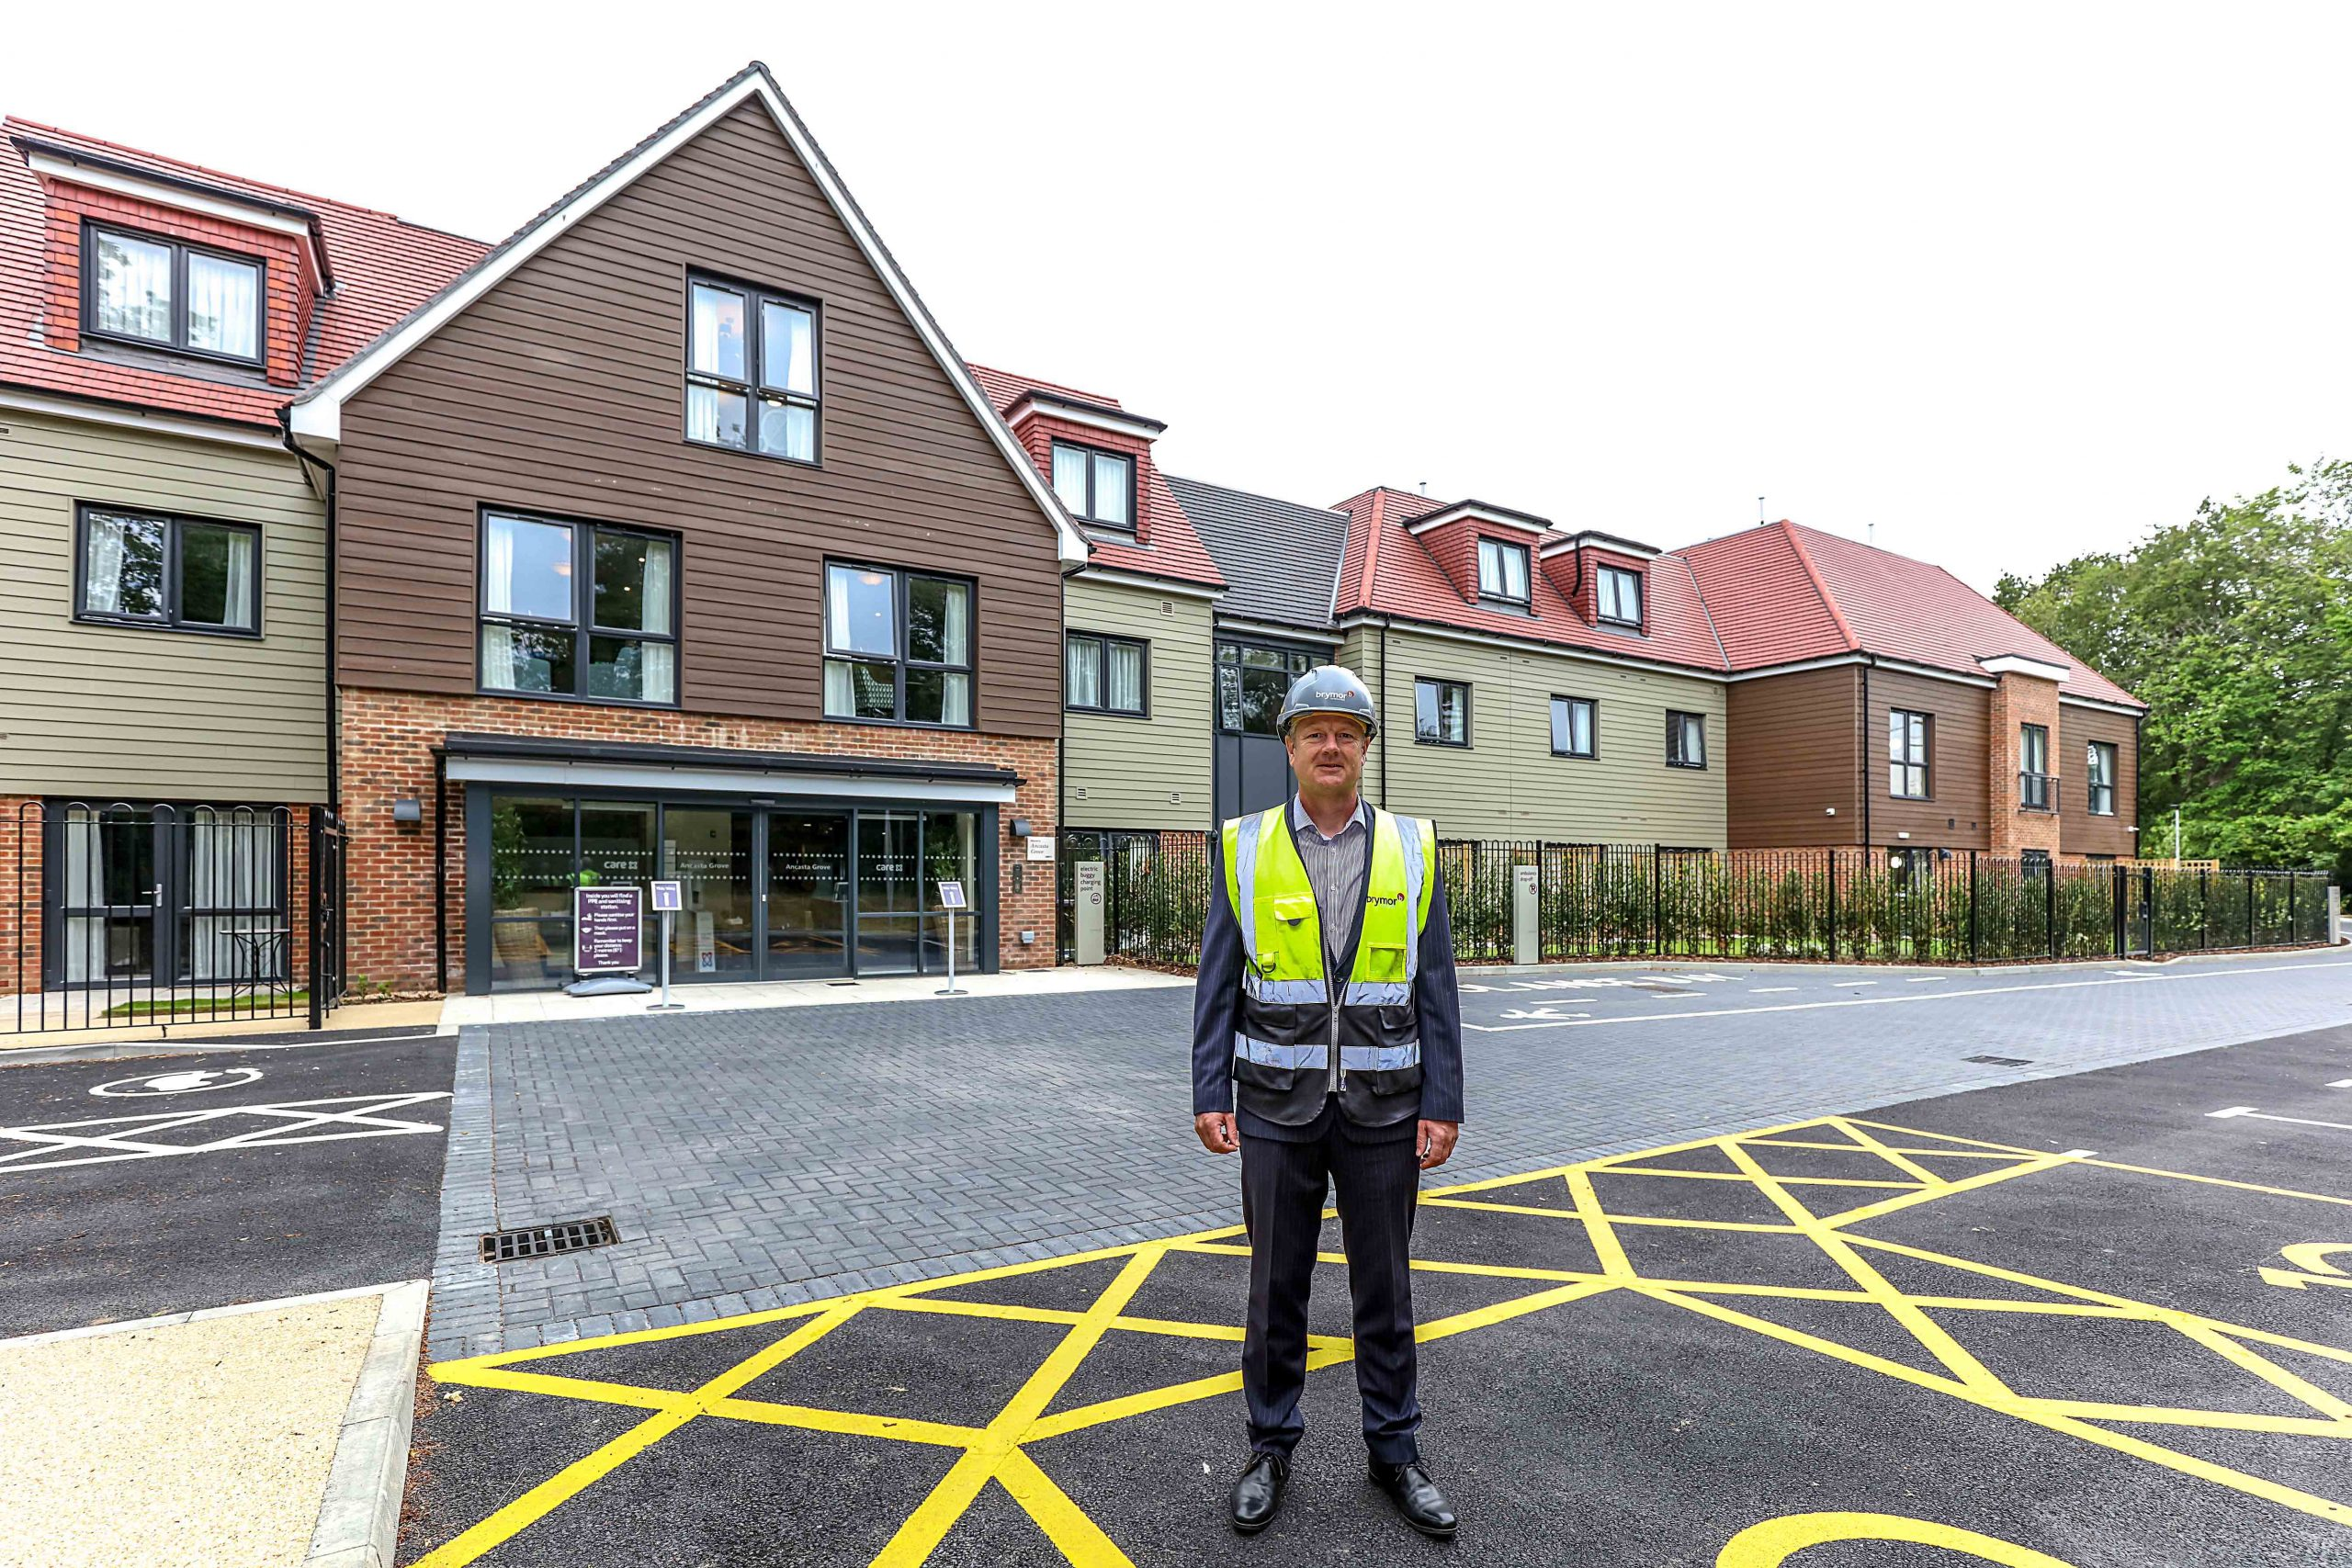 Care home completion is double landmark for Brymor and Care UK